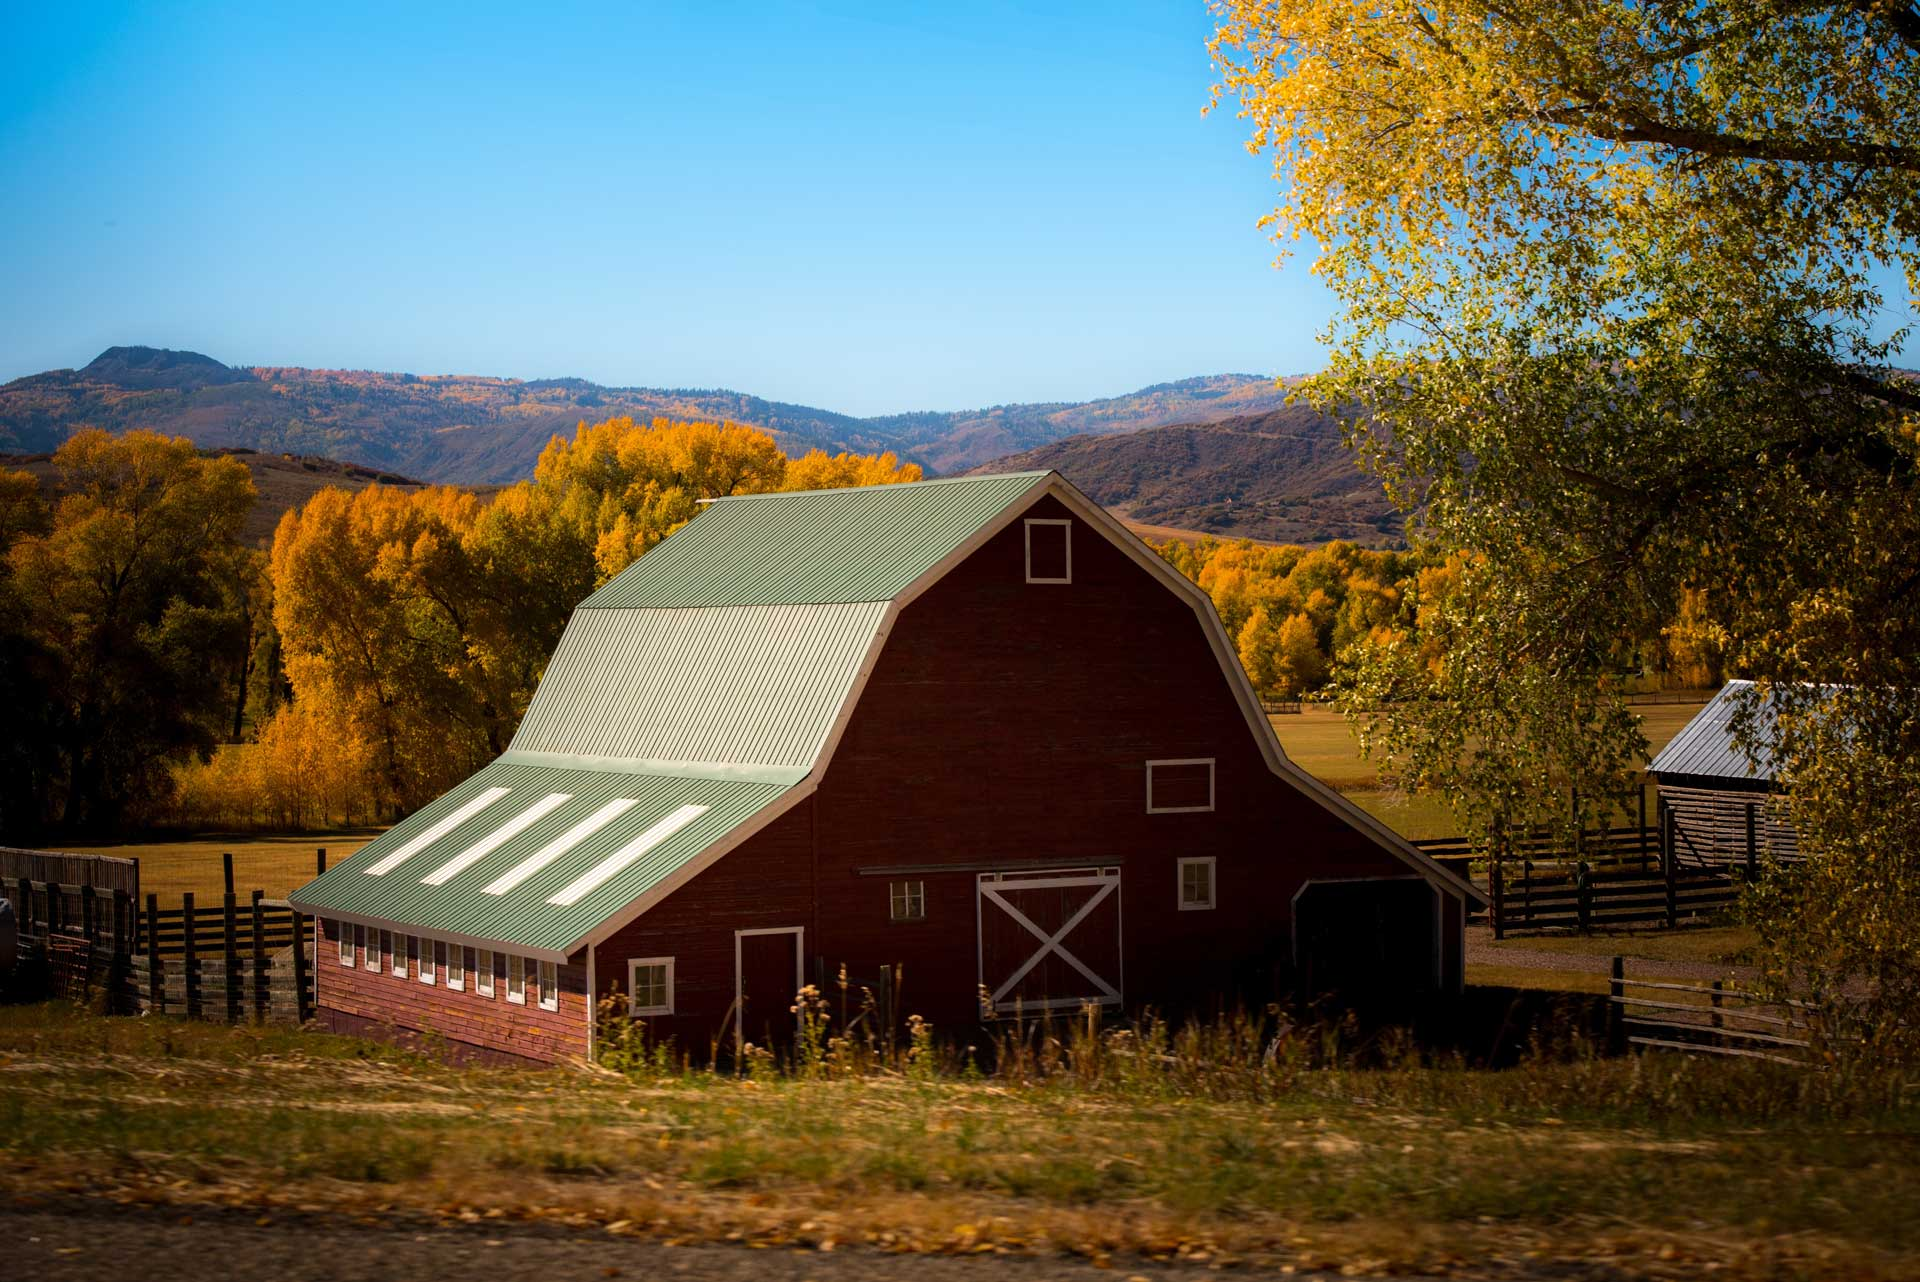 red barn with green roof surrounded with trees in the distance during fall